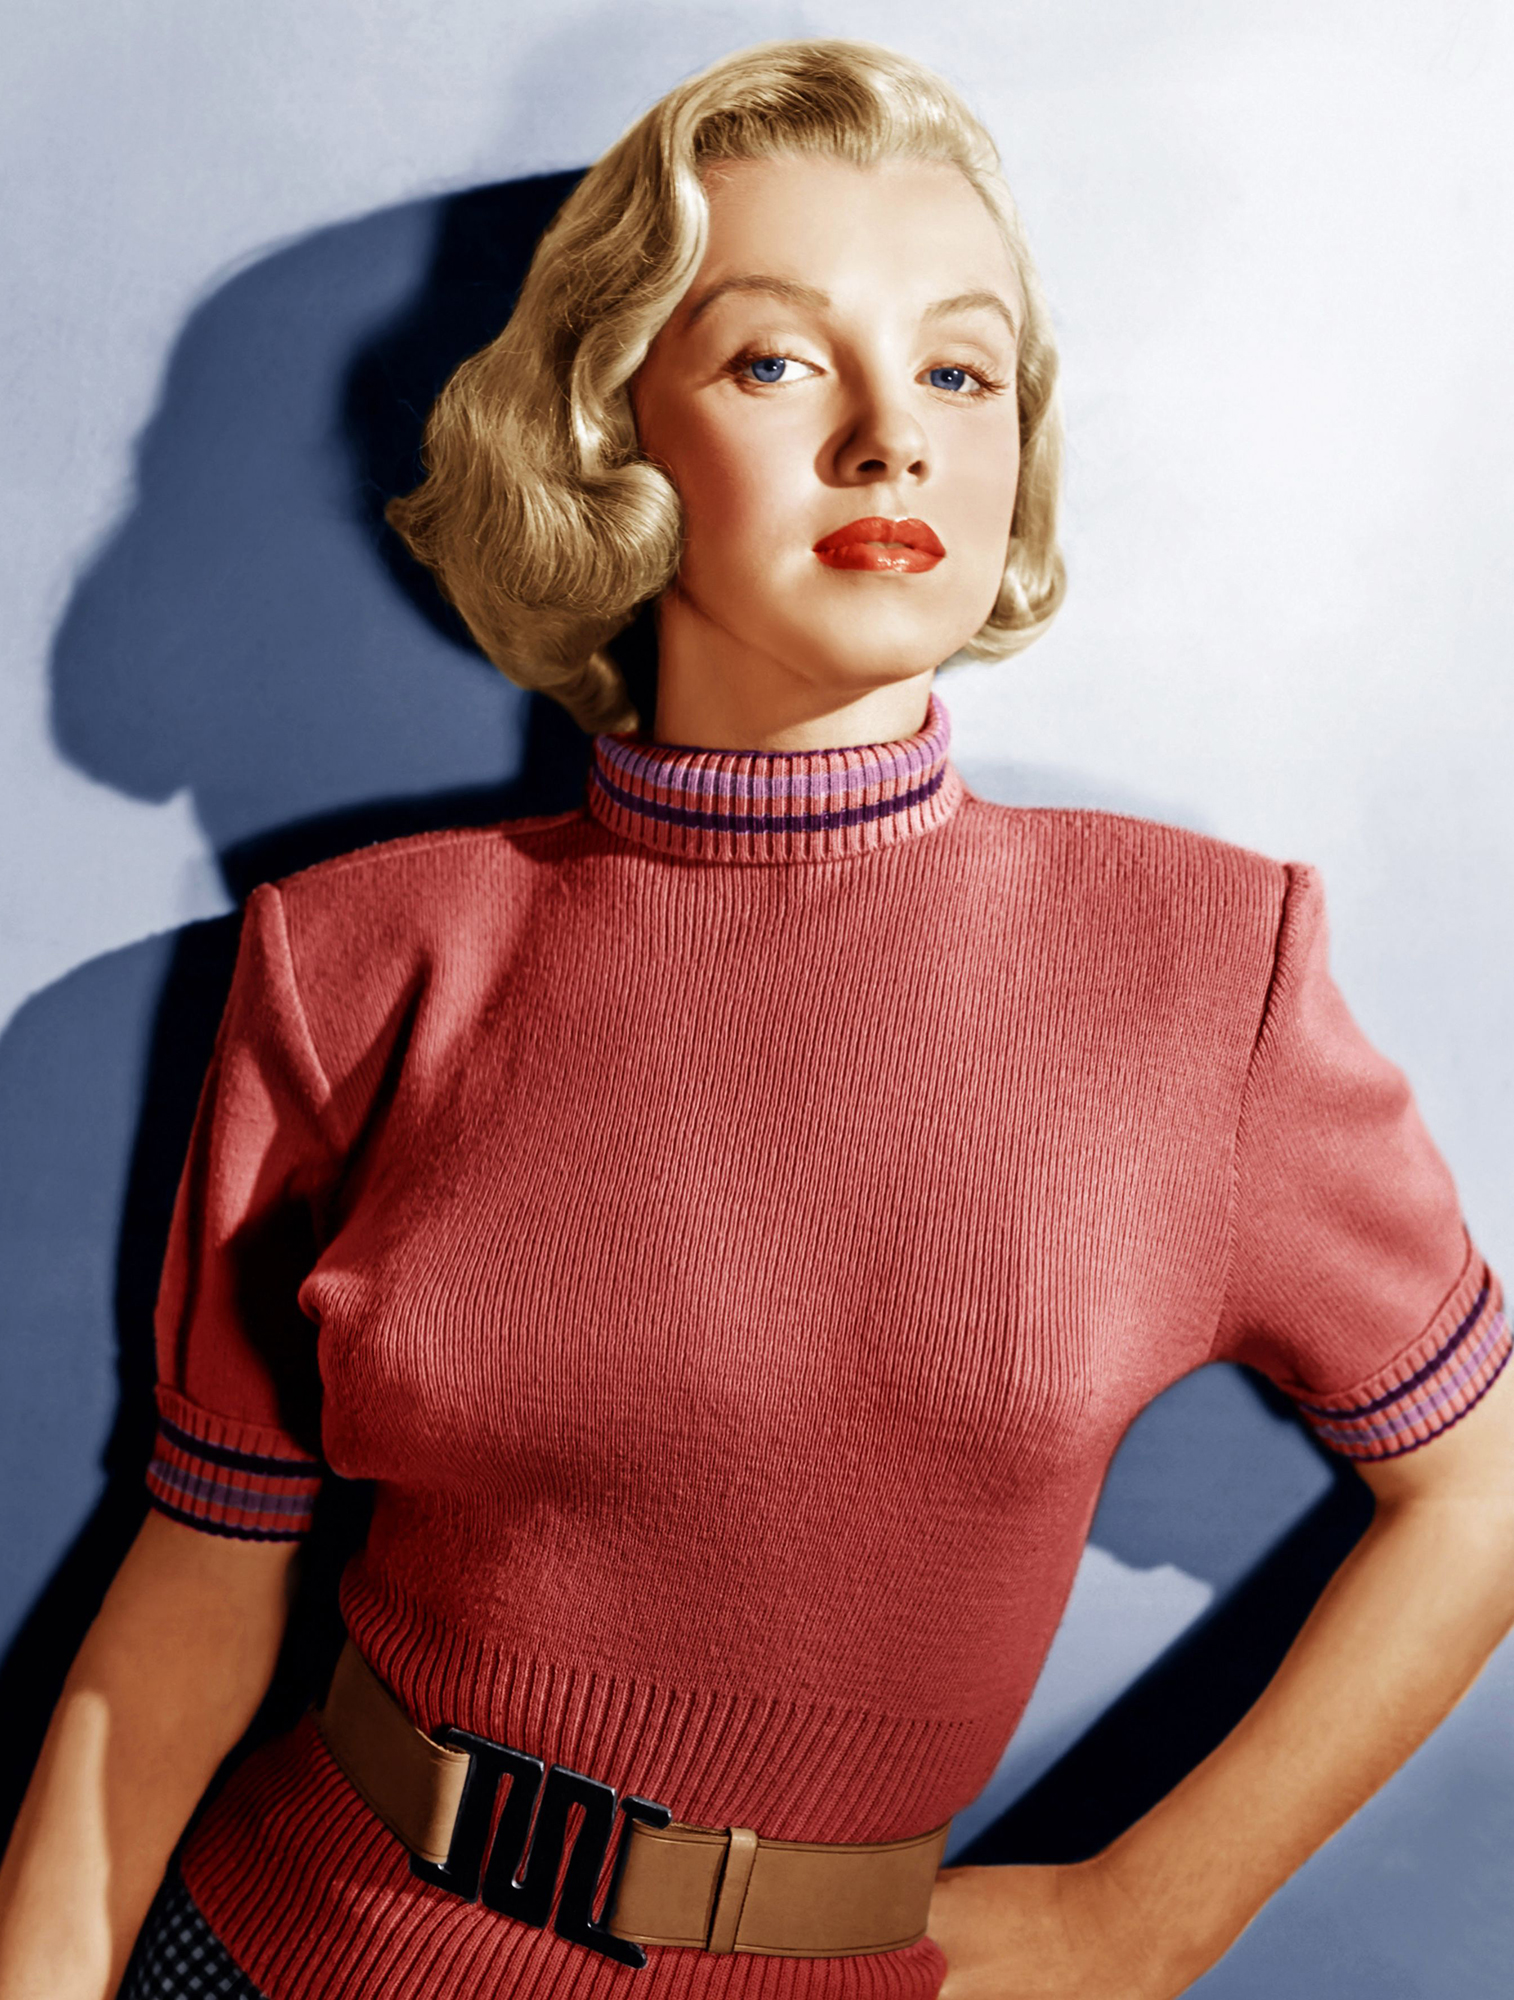 'The Killing of Marilyn Monroe' Episode 4 Explores Star's Struggles With Fame and Past Trauma